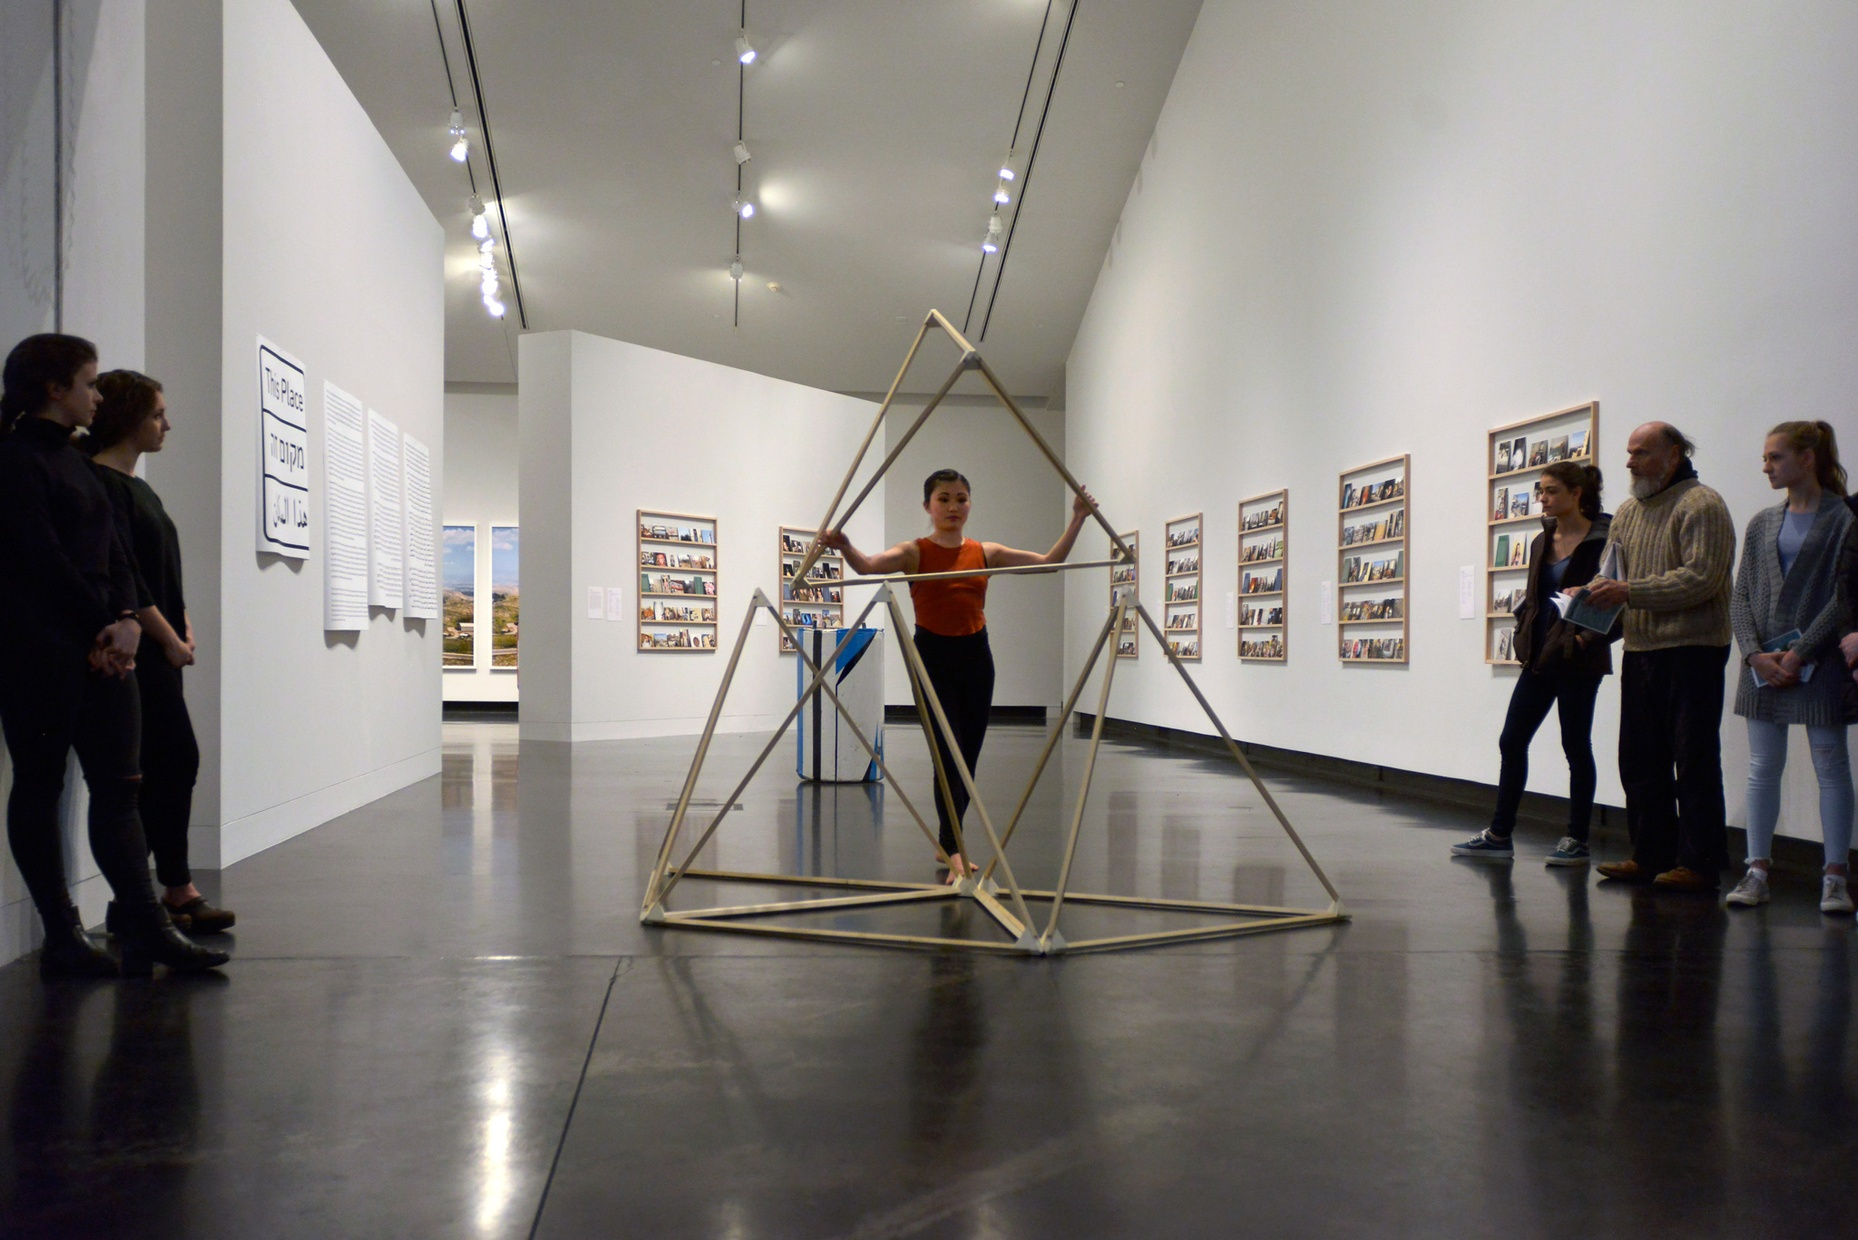 A crowd watches as a young, Asian, female dancer poses with a wooden triangular sculpture.